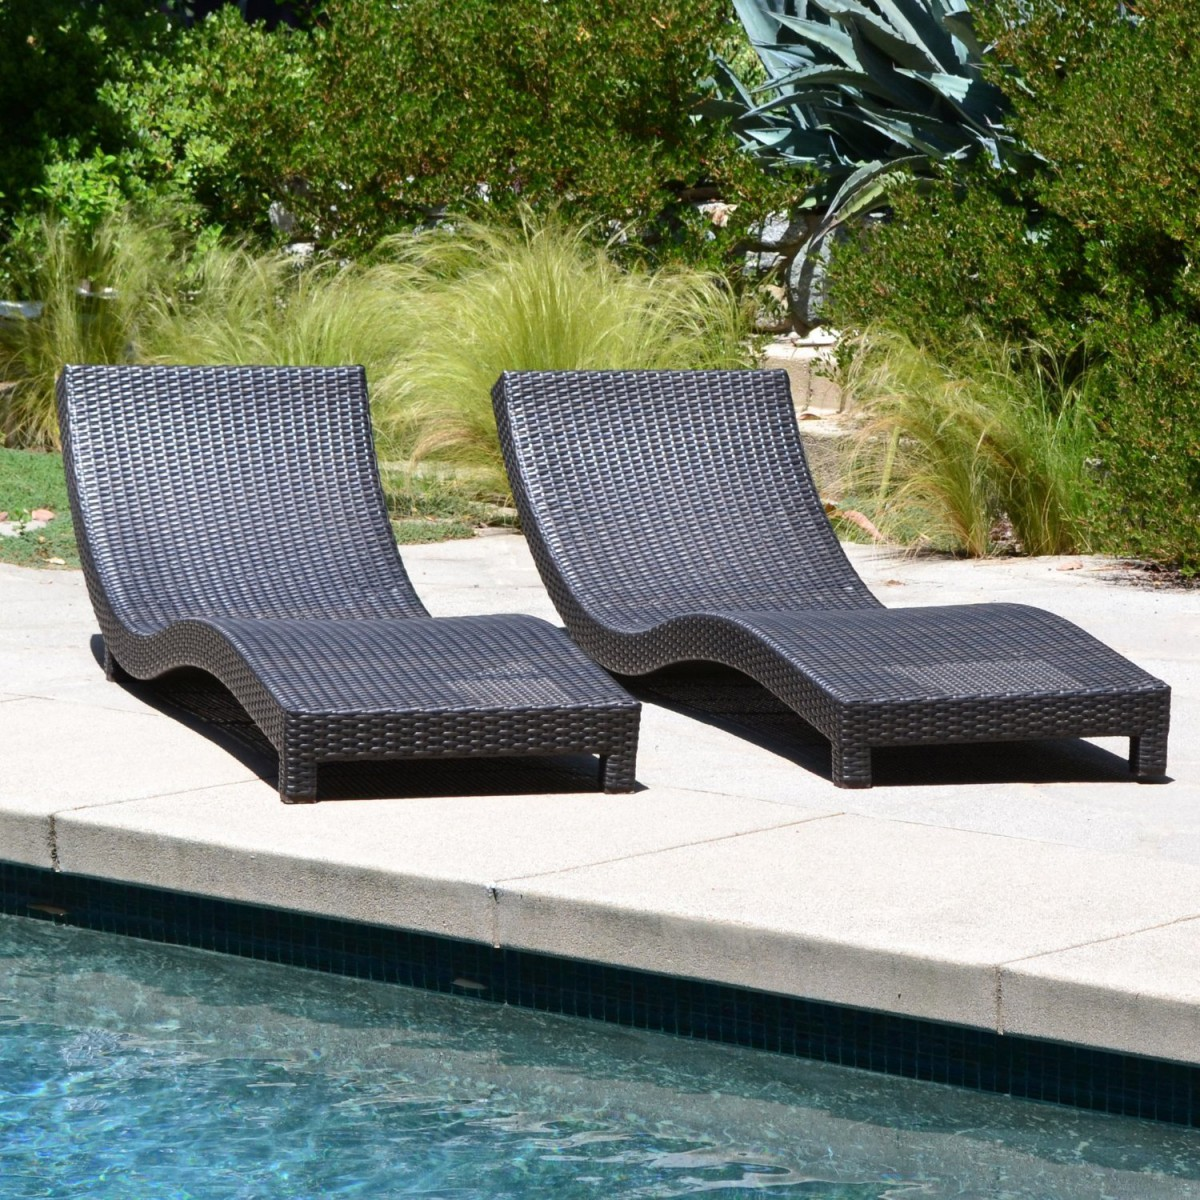 Coast Modern Living Outdoor Chaise Lounge Chairs W/ Cushions